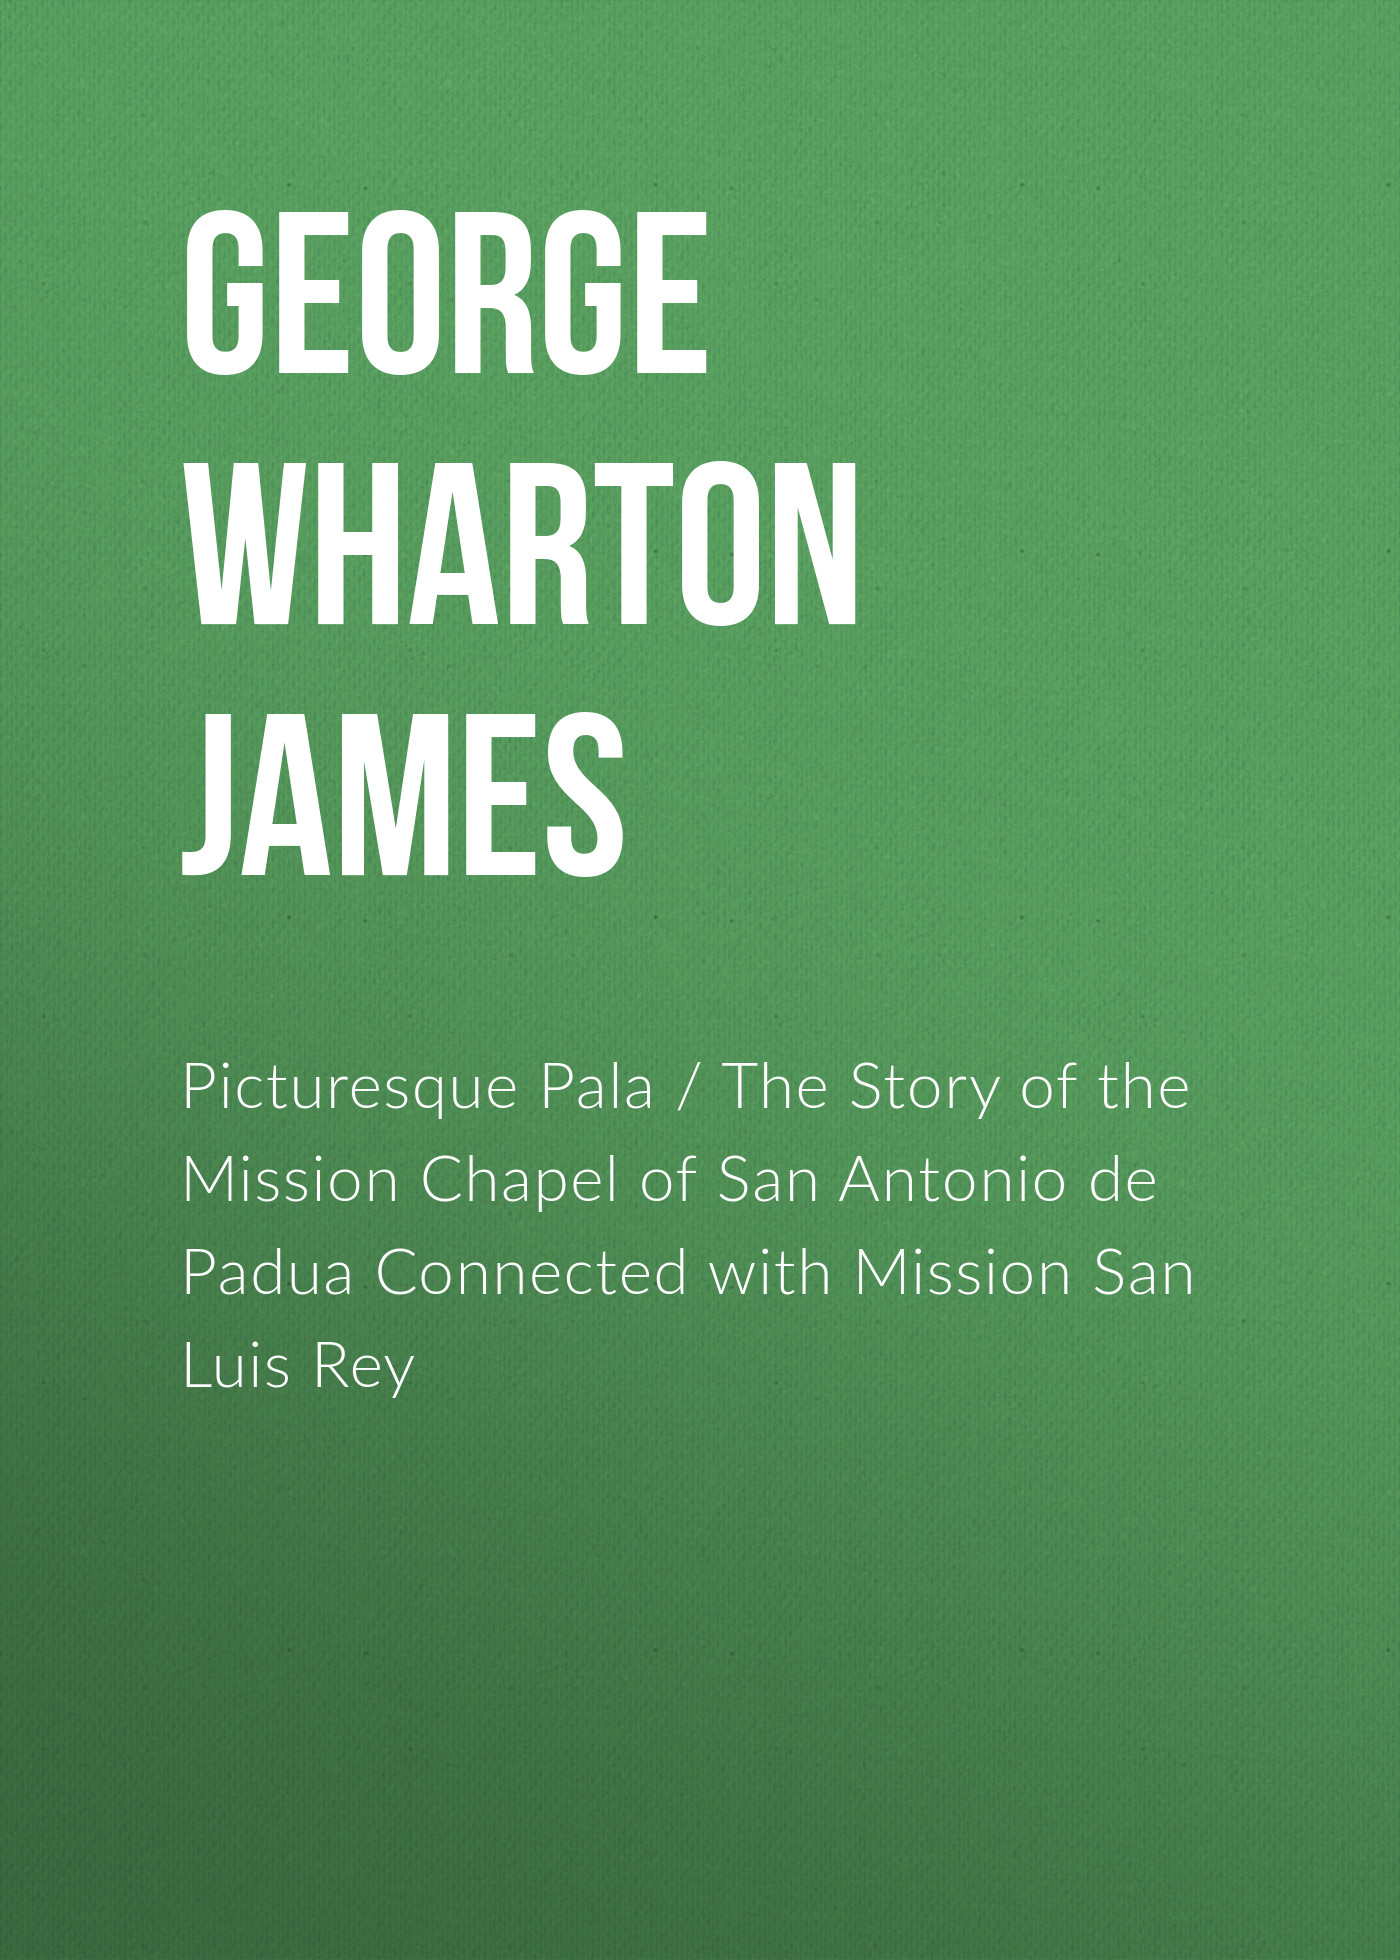 George Wharton James Picturesque Pala / The Story of the Mission Chapel of San Antonio de Padua Connected with Mission San Luis Rey gardner edmund g the story of siena and san gimignano